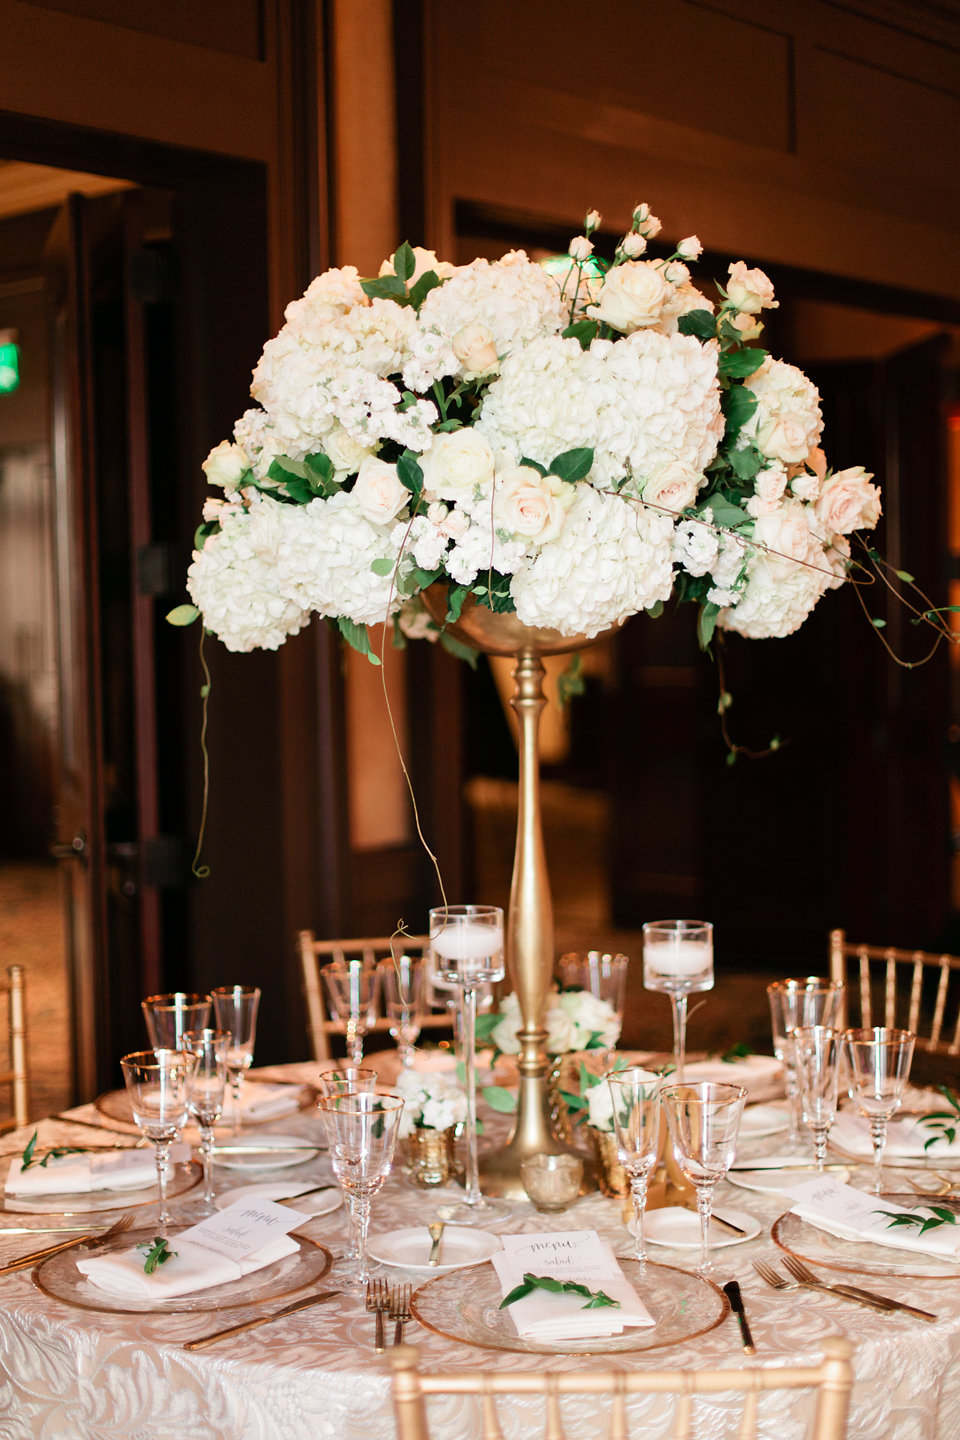 Blush & Ivory centerpieces with greenery  Blush Wedding at TPC Sawgrass Wedding Ponte Vedra Beach  Jacksonville Wedding Planner Blue Ribbon Weddings  Jacksonville Wedding Photographer Debra Eby Photography  Wedding Ceremony & Reception at TPC Sawgrass Jacksonville